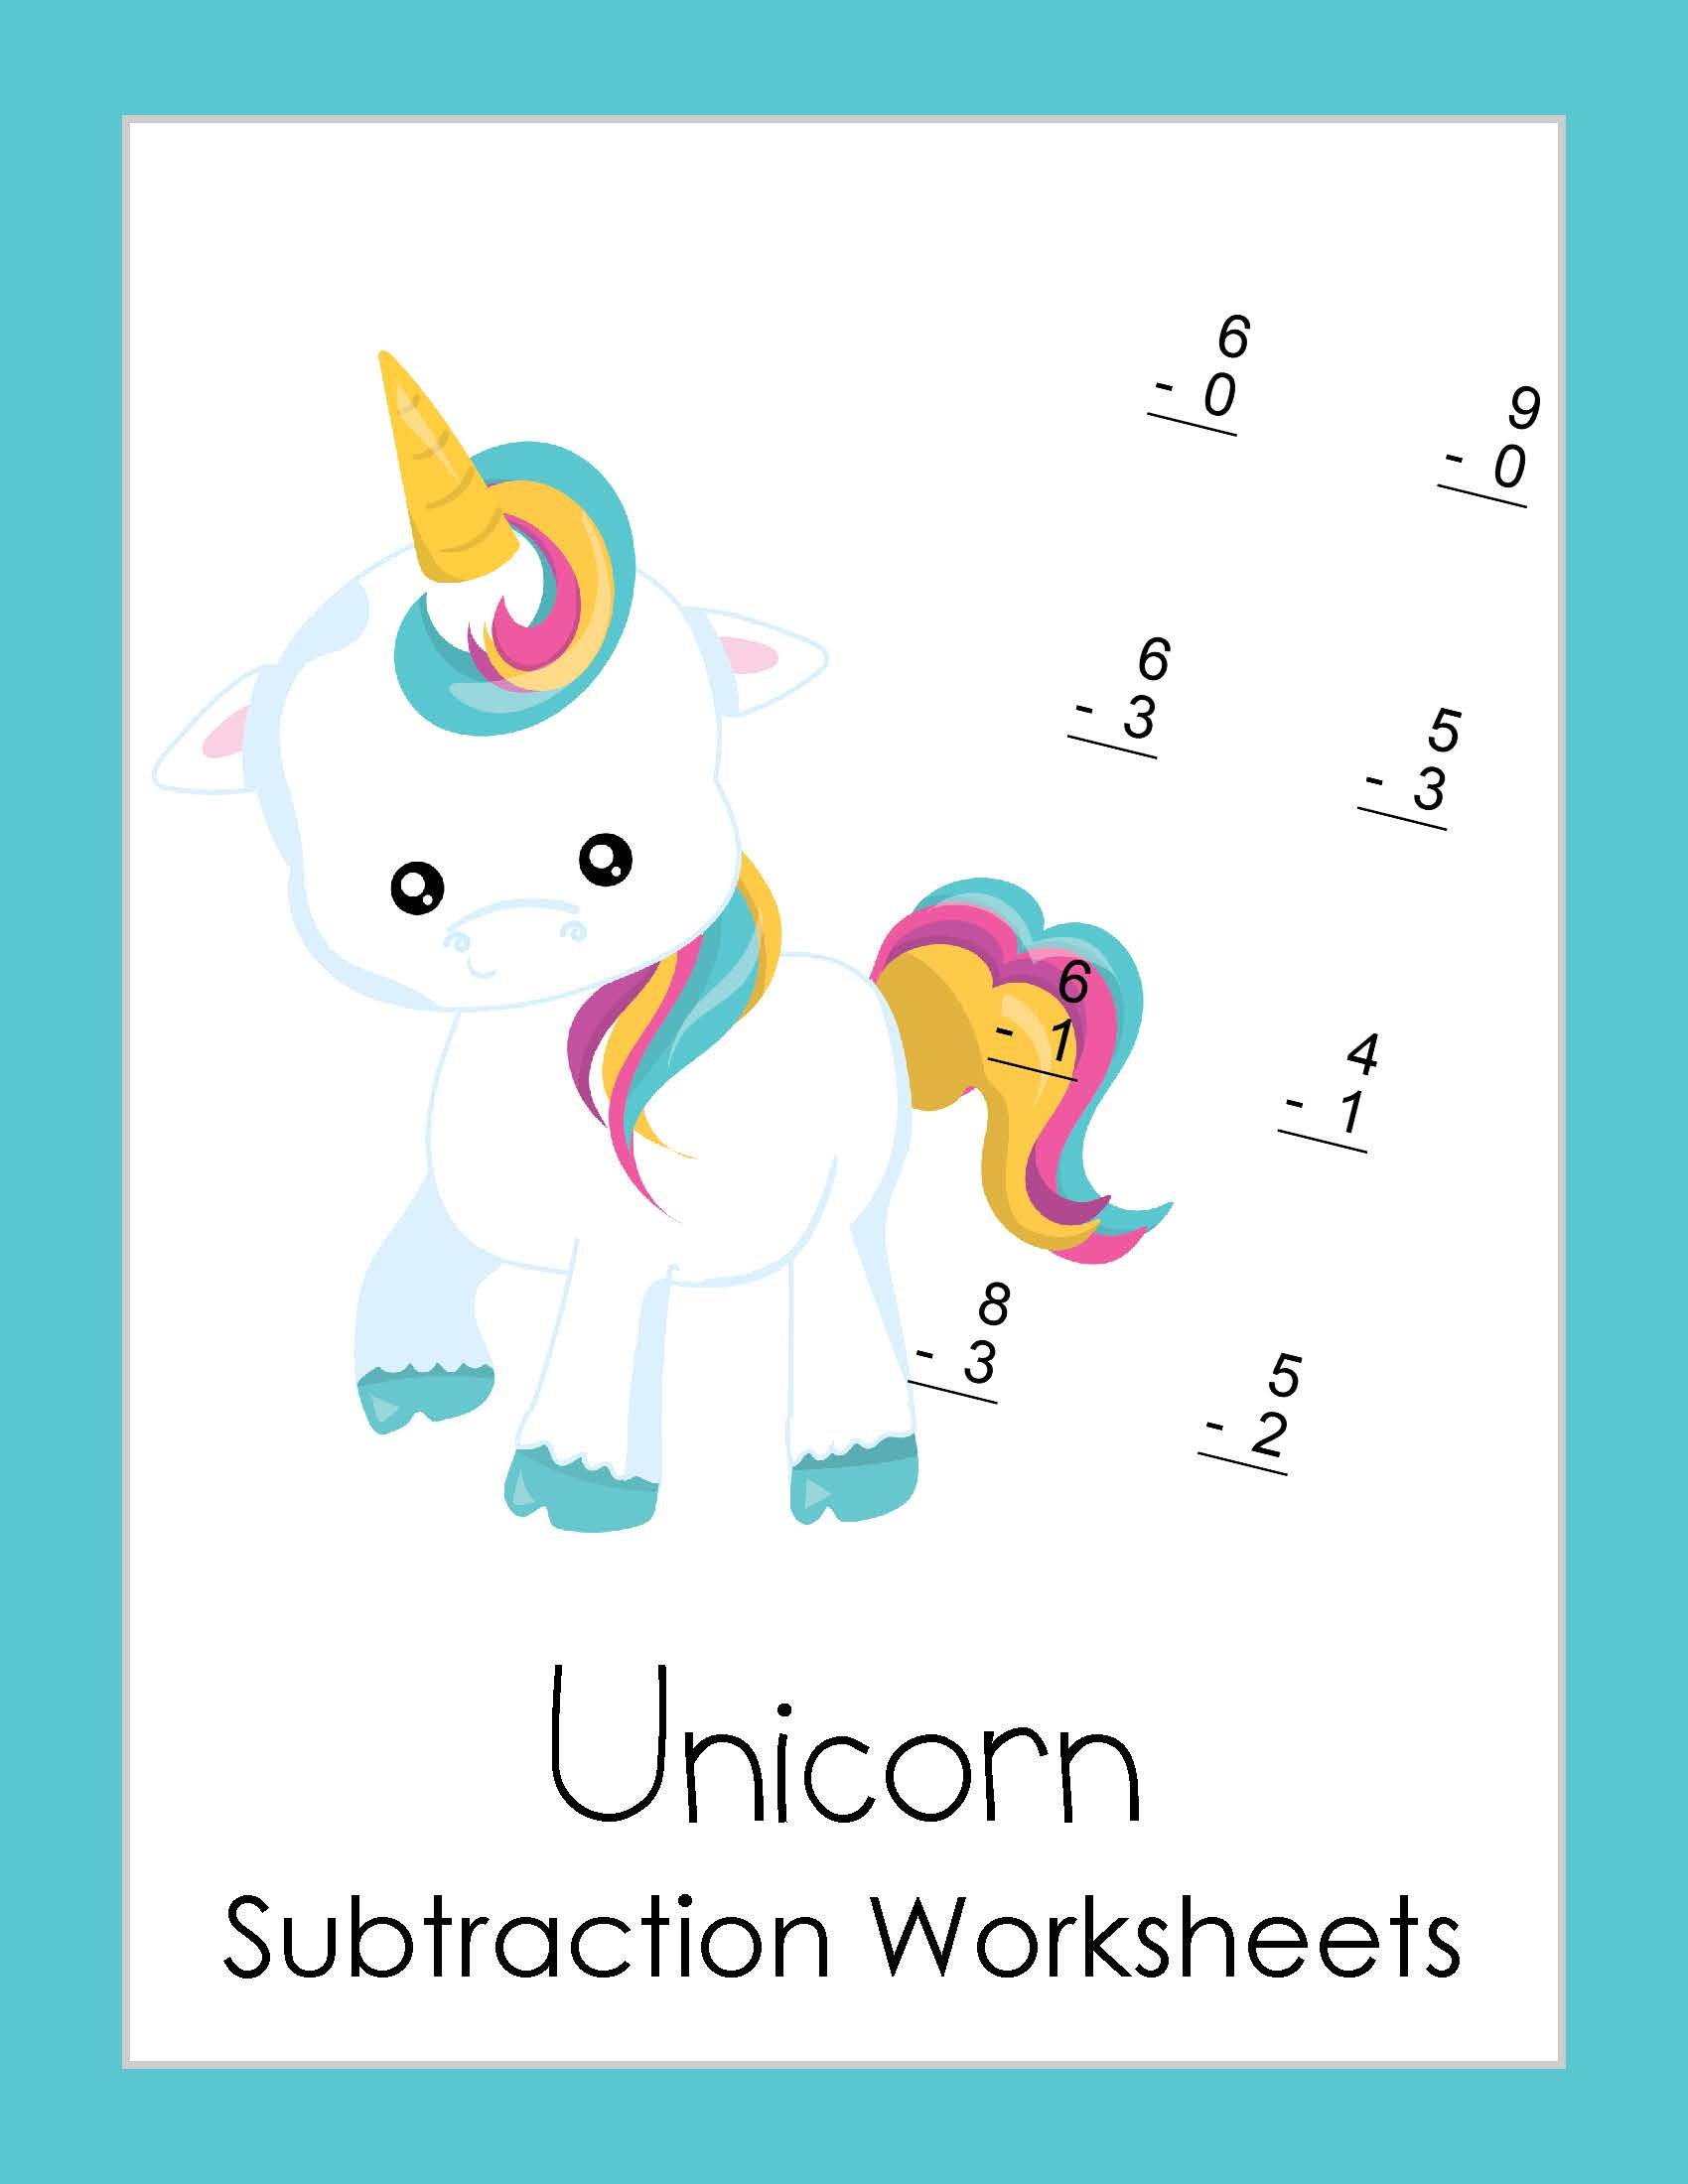 Free Subtraction Worksheets With A Unicorn Theme